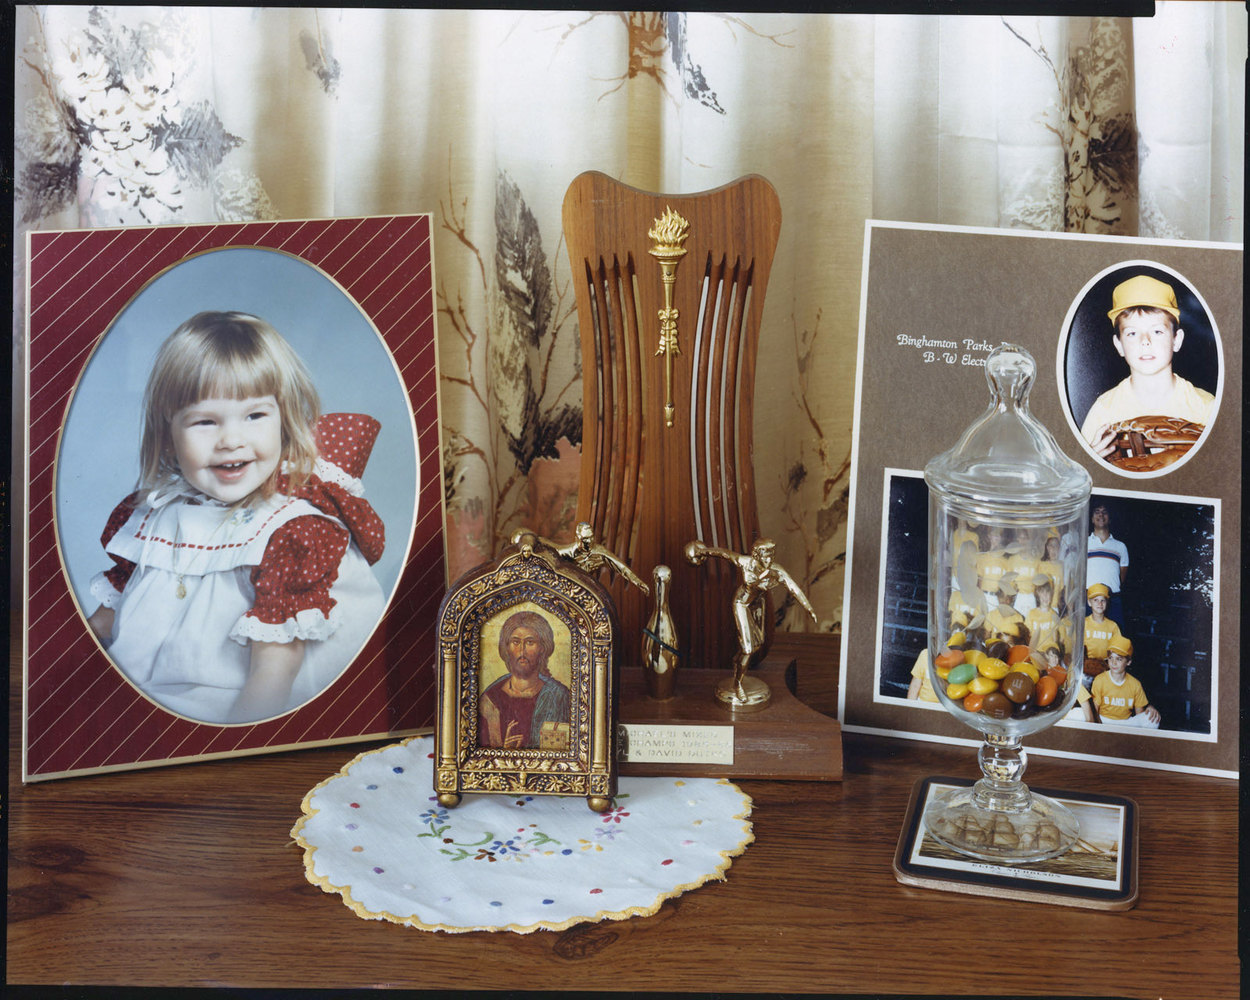 Framed children's portraits, trophy, religious picture, with M&M's